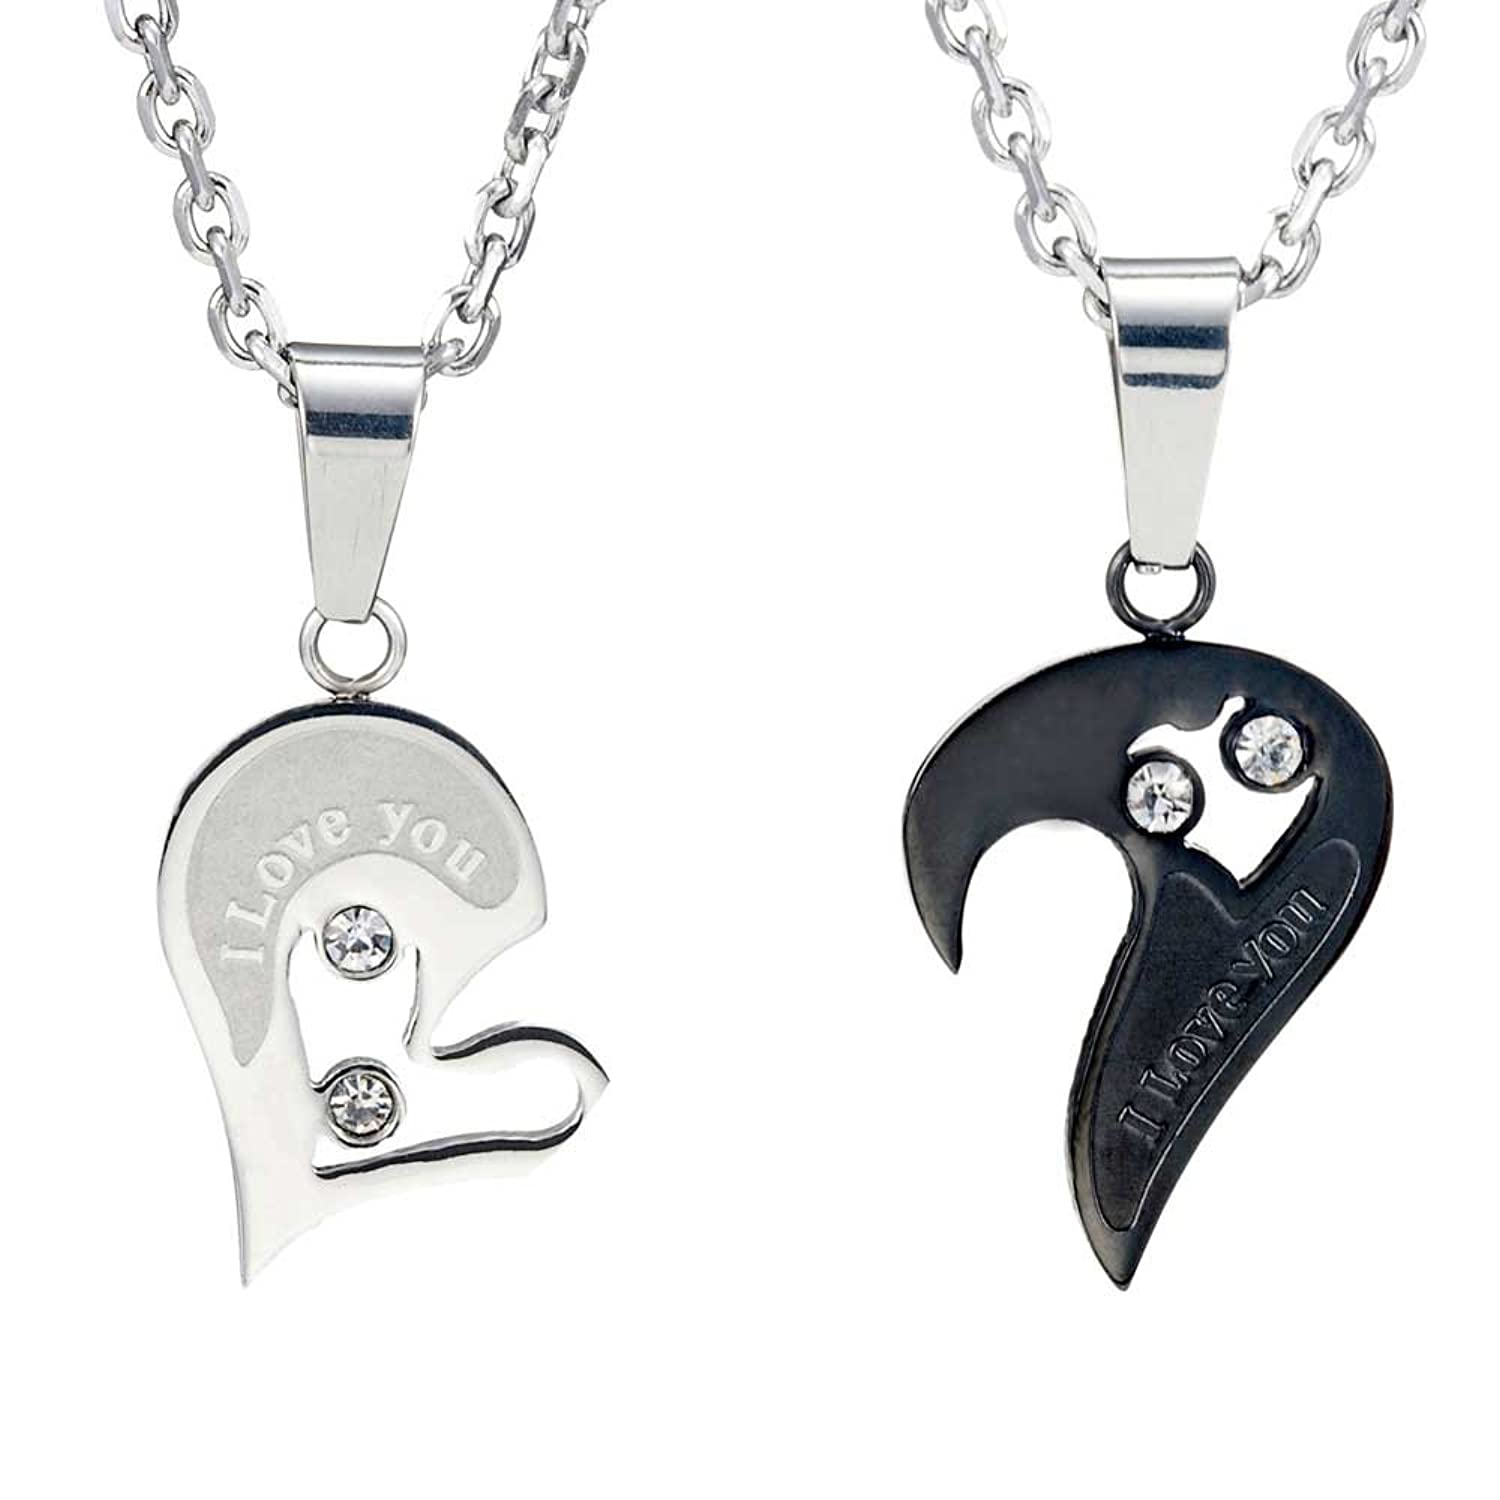 2pcs His & Hers Couples Gift Heart Pendant Love Necklace Set for ...